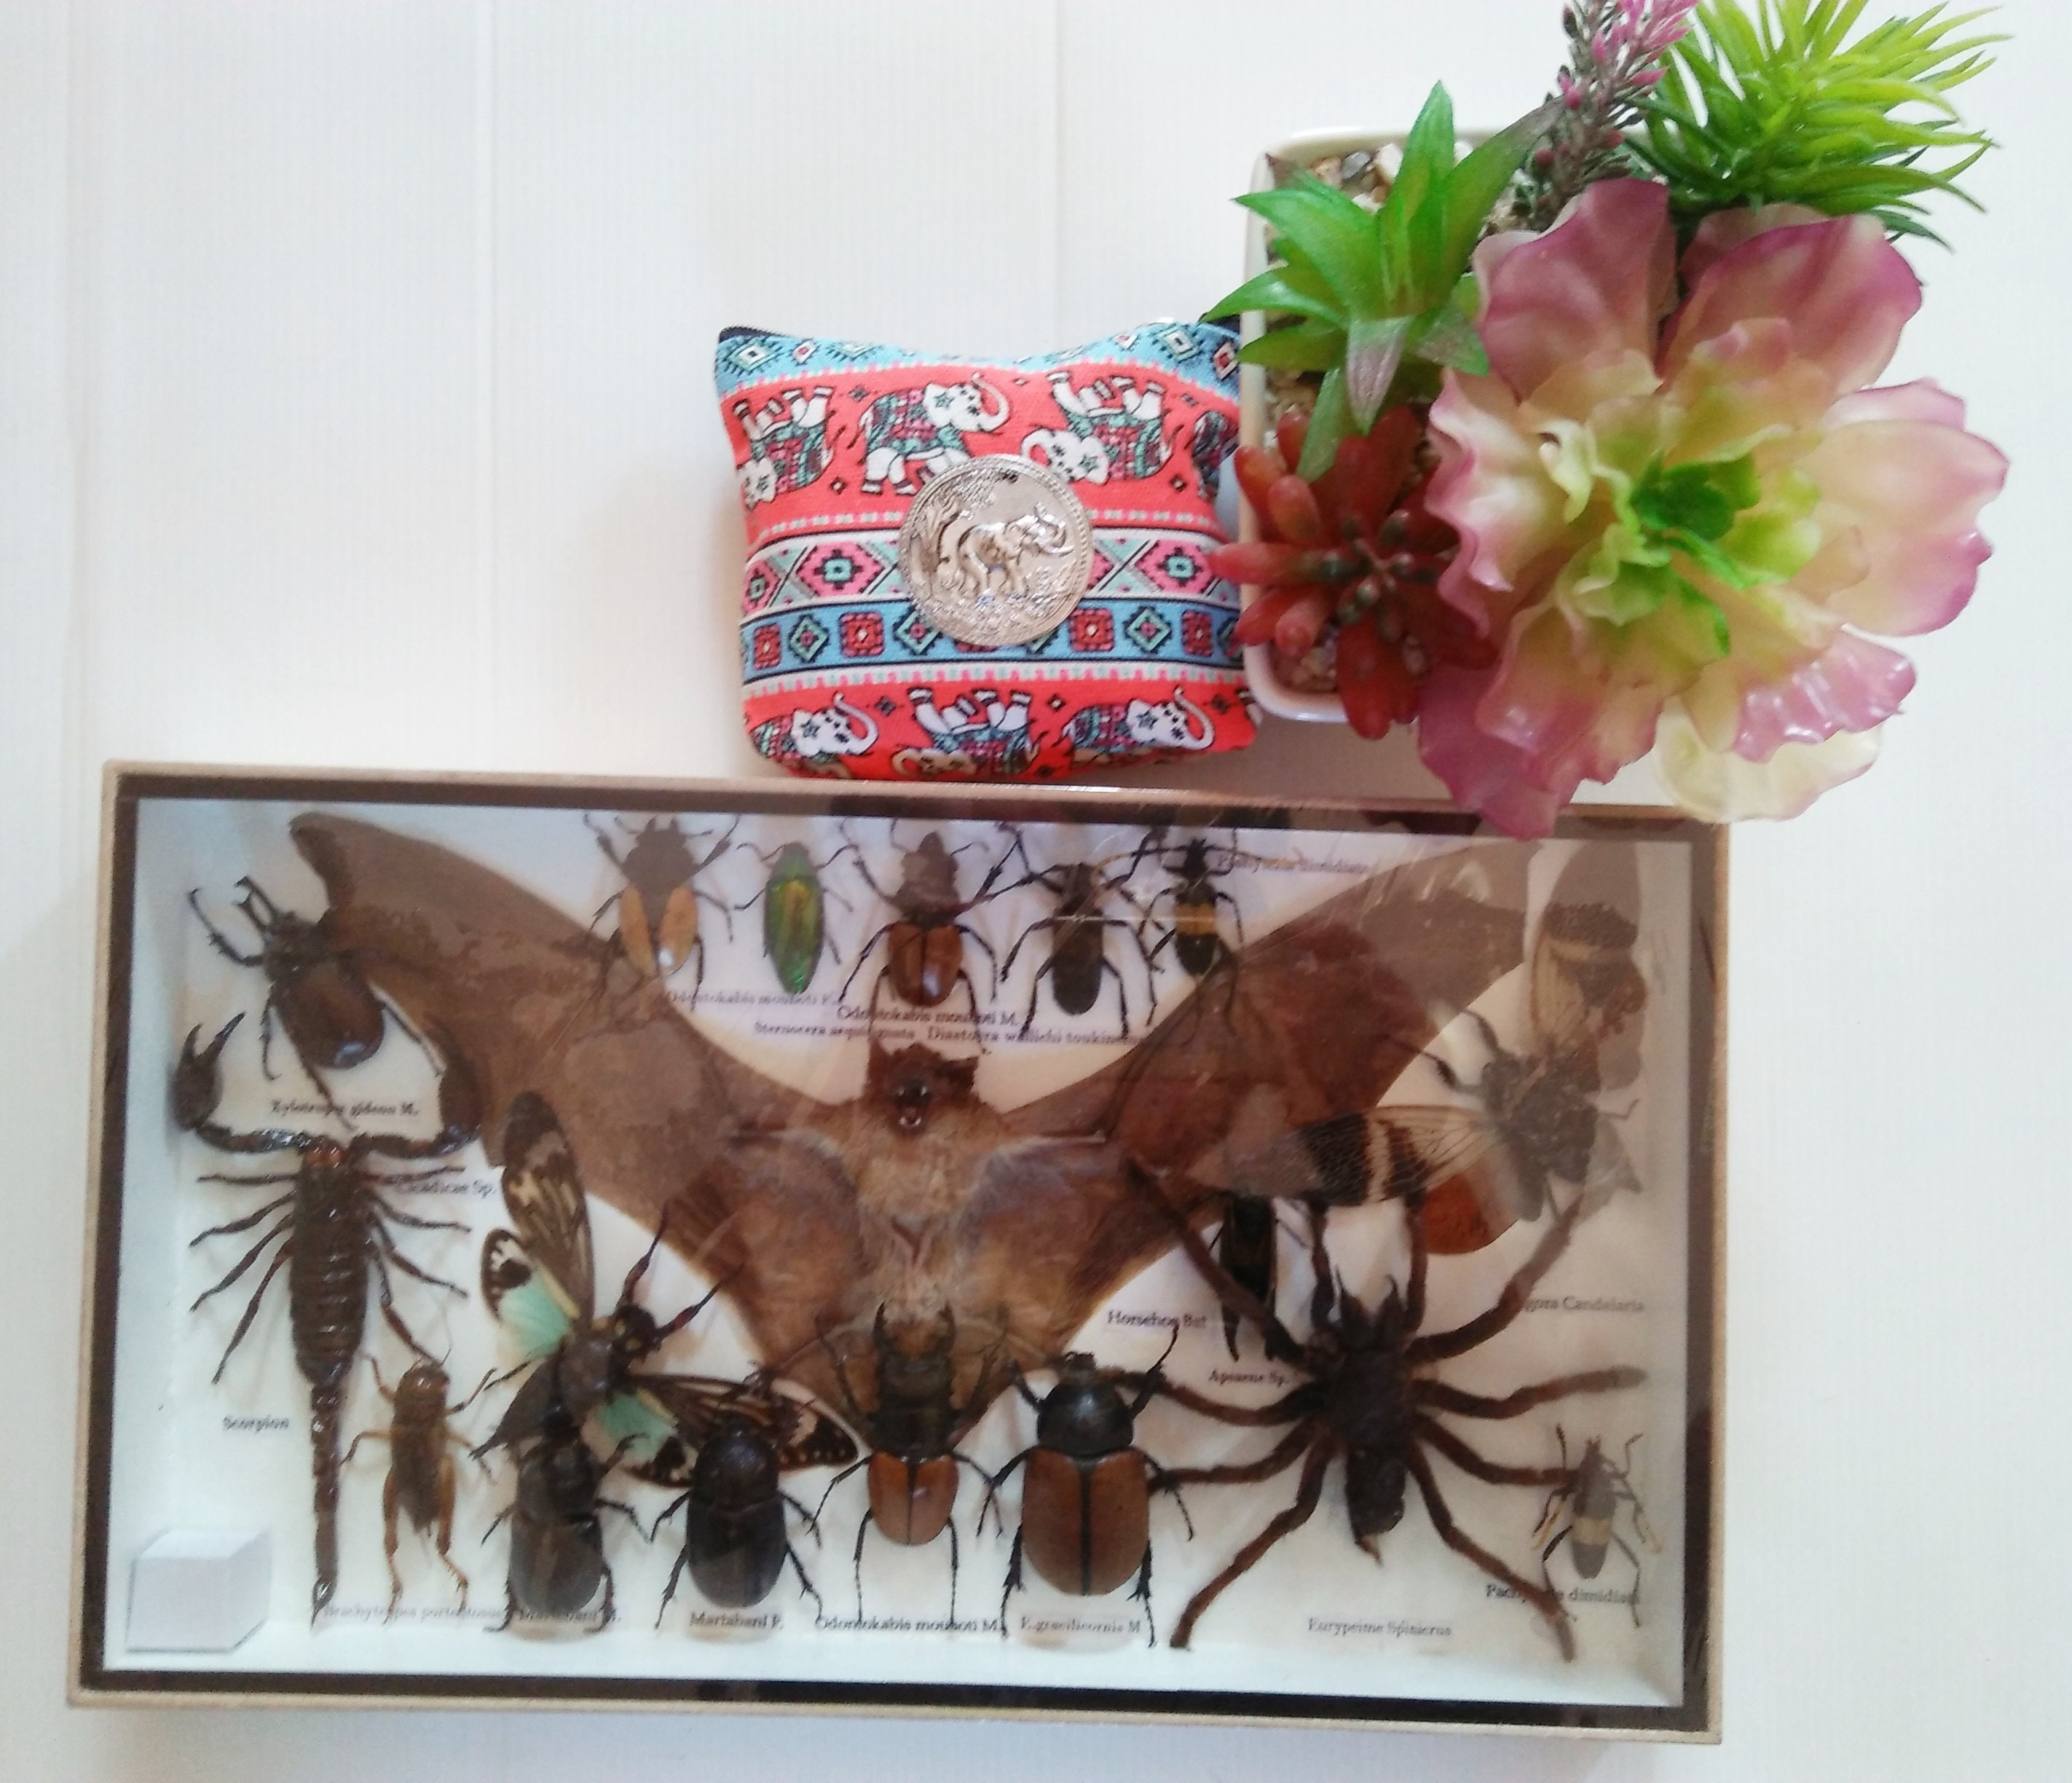 REAL EXOTIC BAT COLLECTION SPIDER SCORPION BUG INSECTS DISPLAY TAXIDERMY FRAME 2